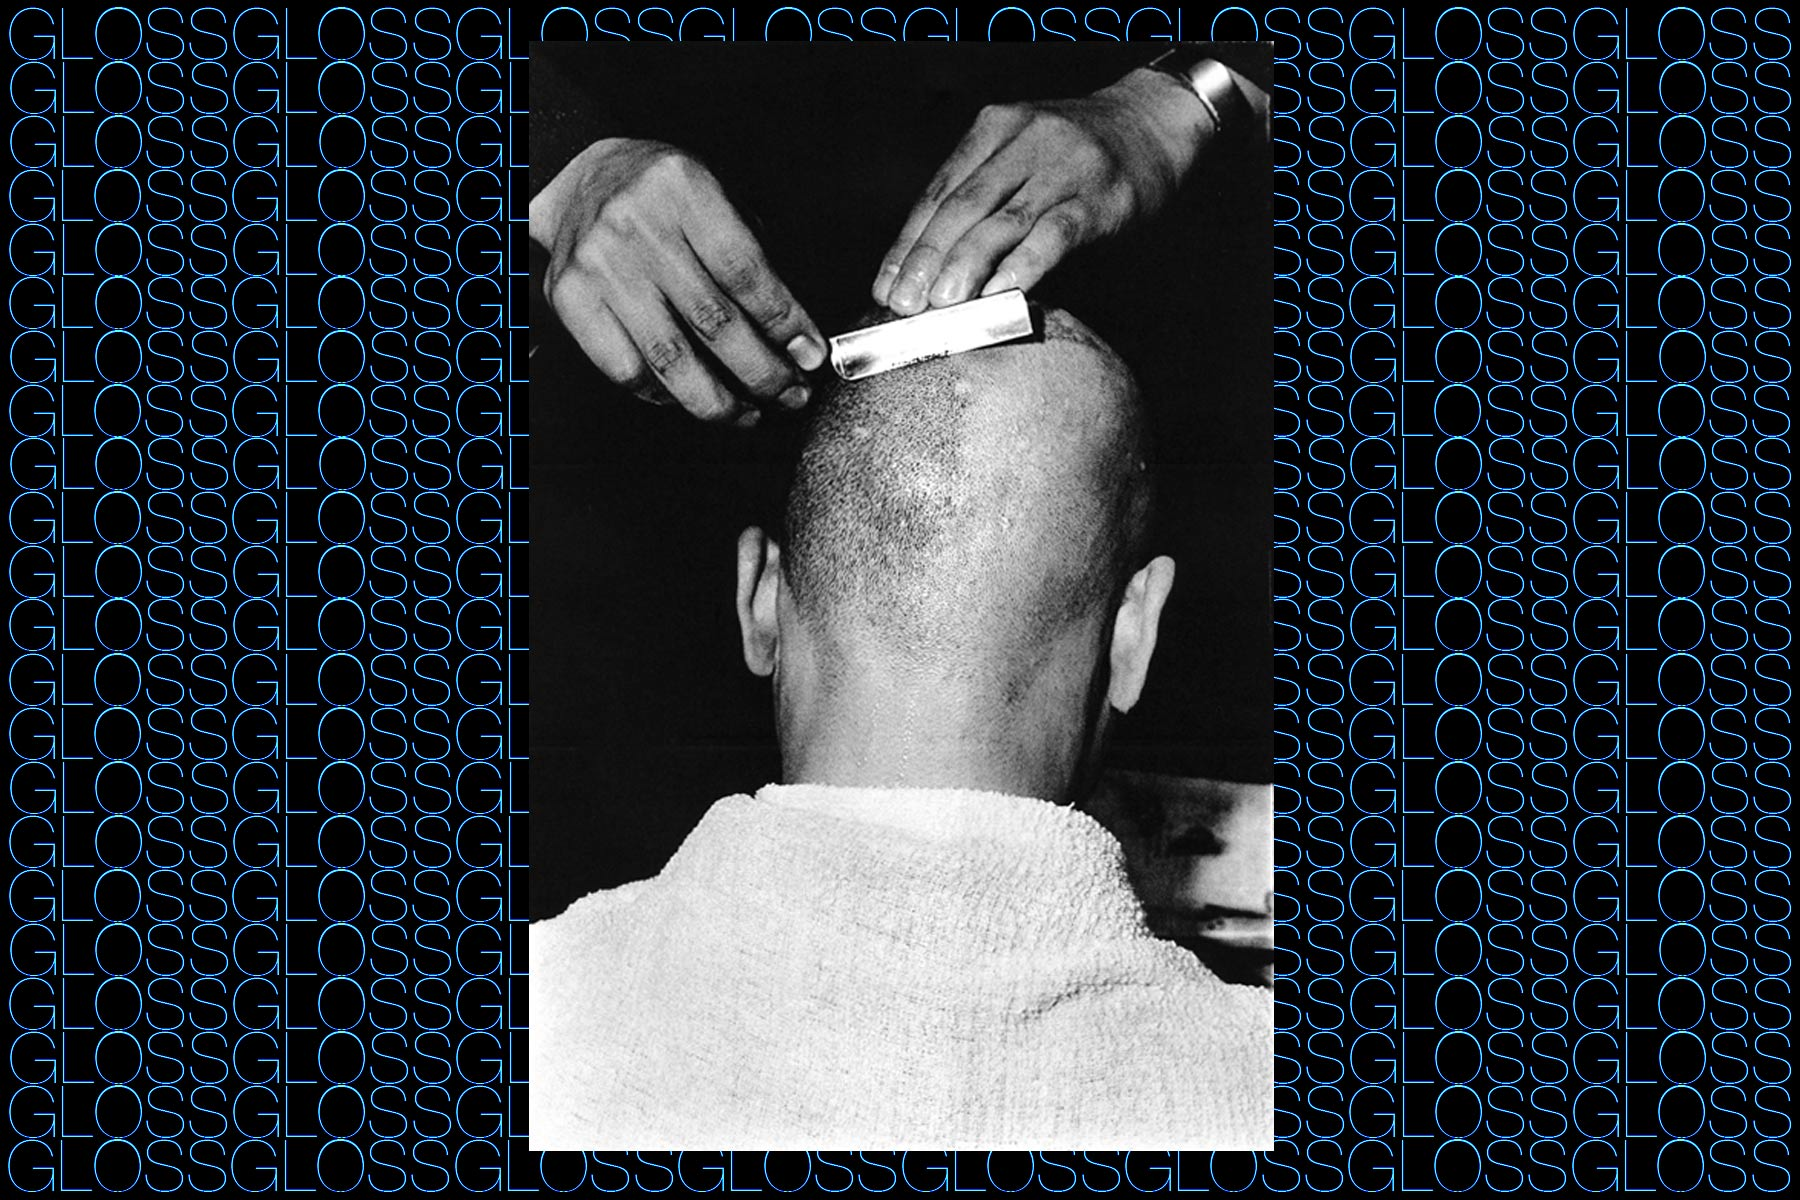 Photograph of a head being shaved, by photographer Chris von Wangenheim, featured in the book GLOSS by Roger Padilha & Mauricio Padilha, Rizzoli 2015. Ponyboy magazine NY.